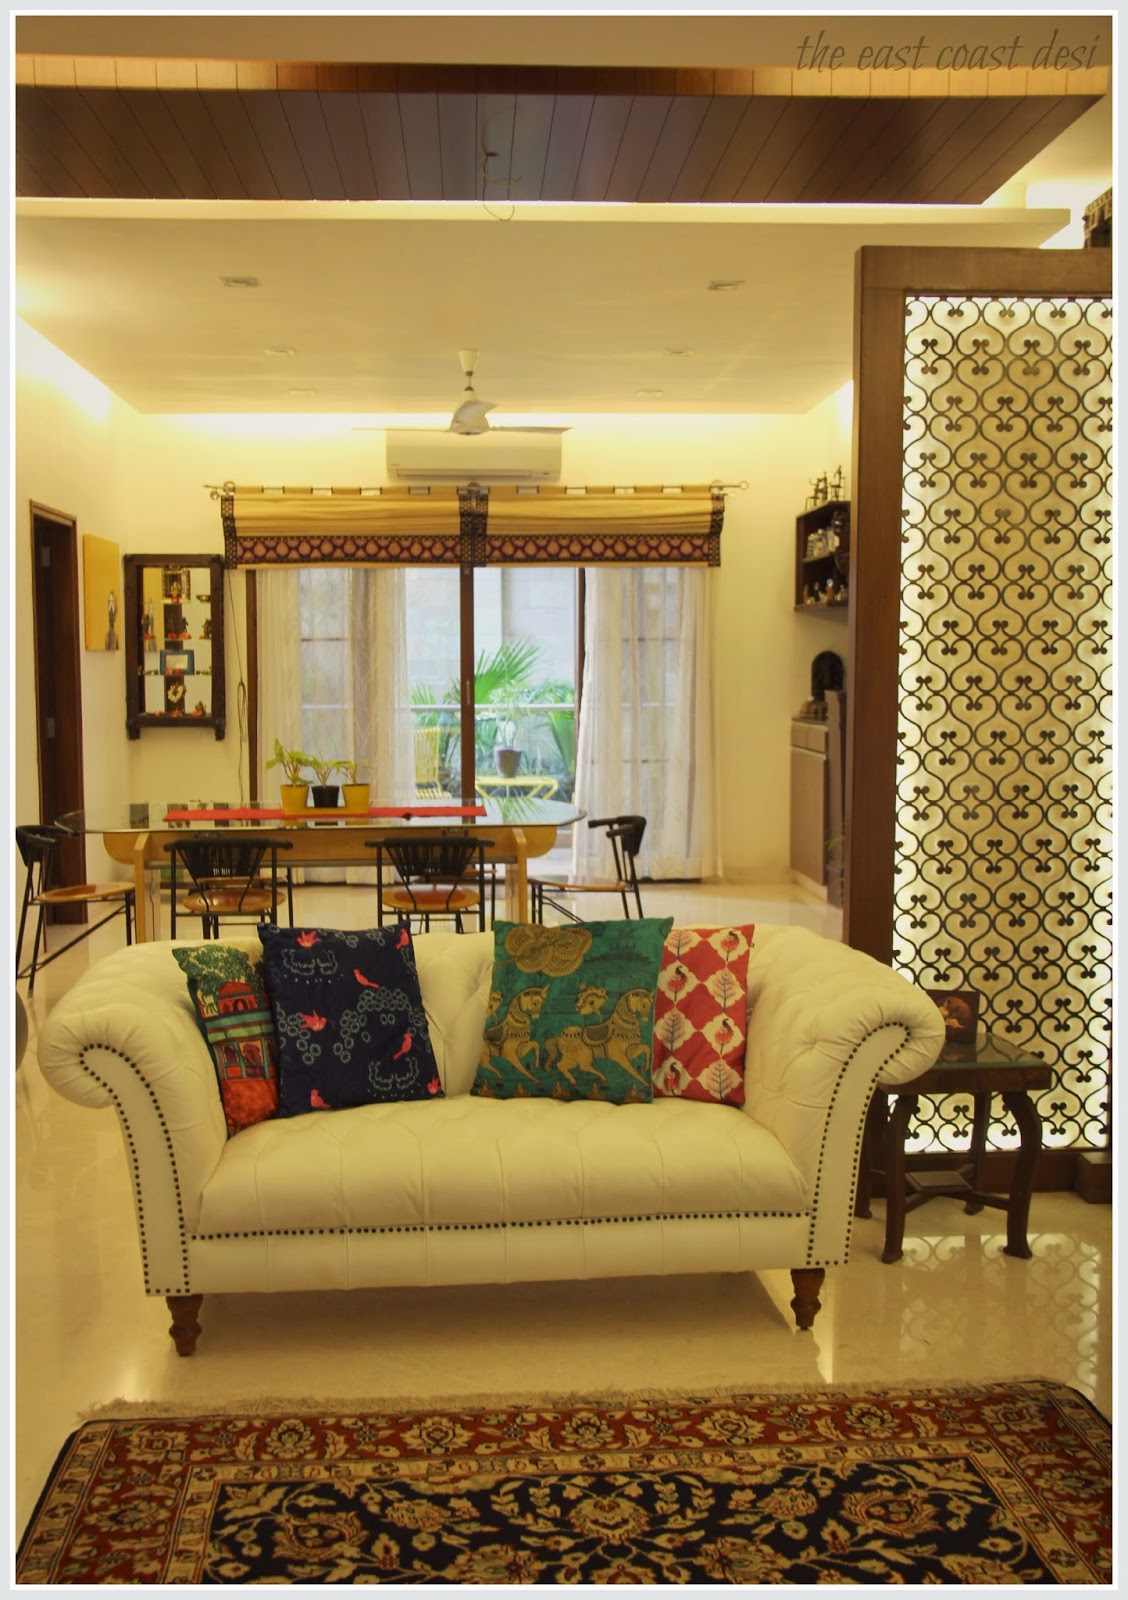 The east coast desi masterful mixing home tour for Apartment interior designs india